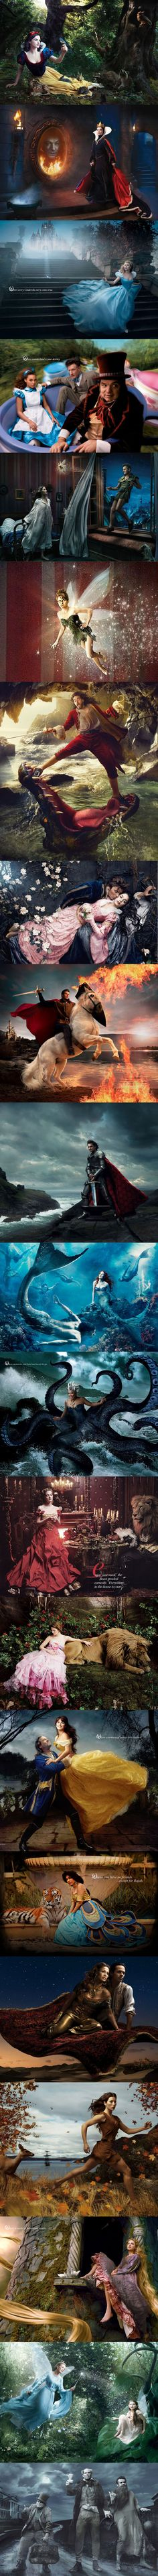 Celebs as Disney characters -  photos by Annie Leibovitz.